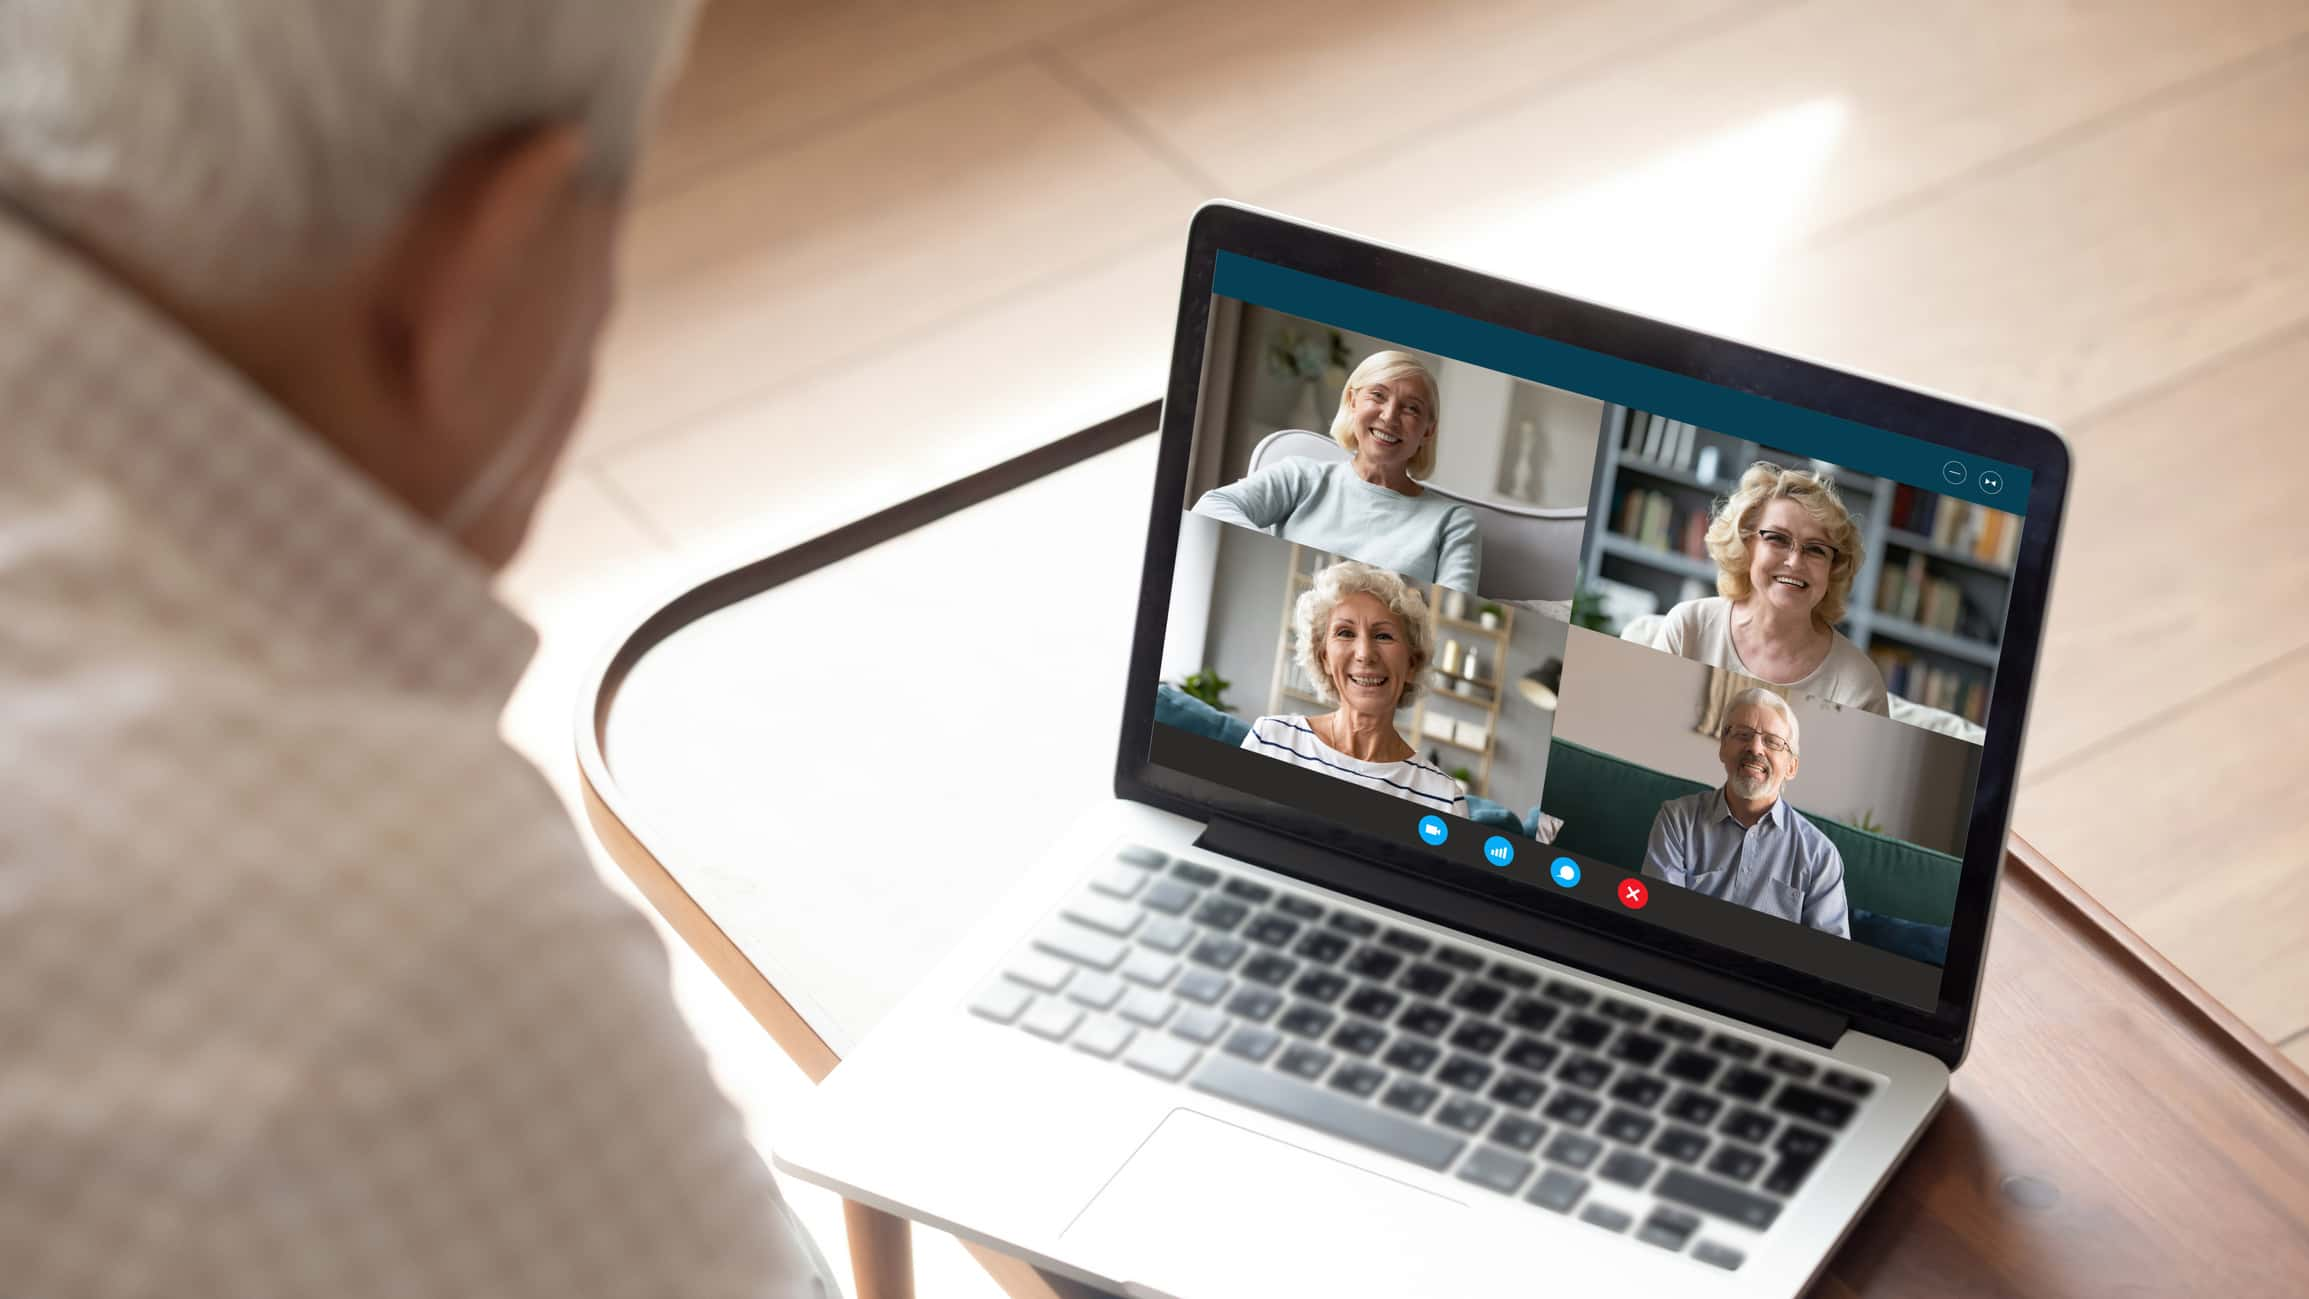 Senior citizen participating in an online video chat with his senior friends